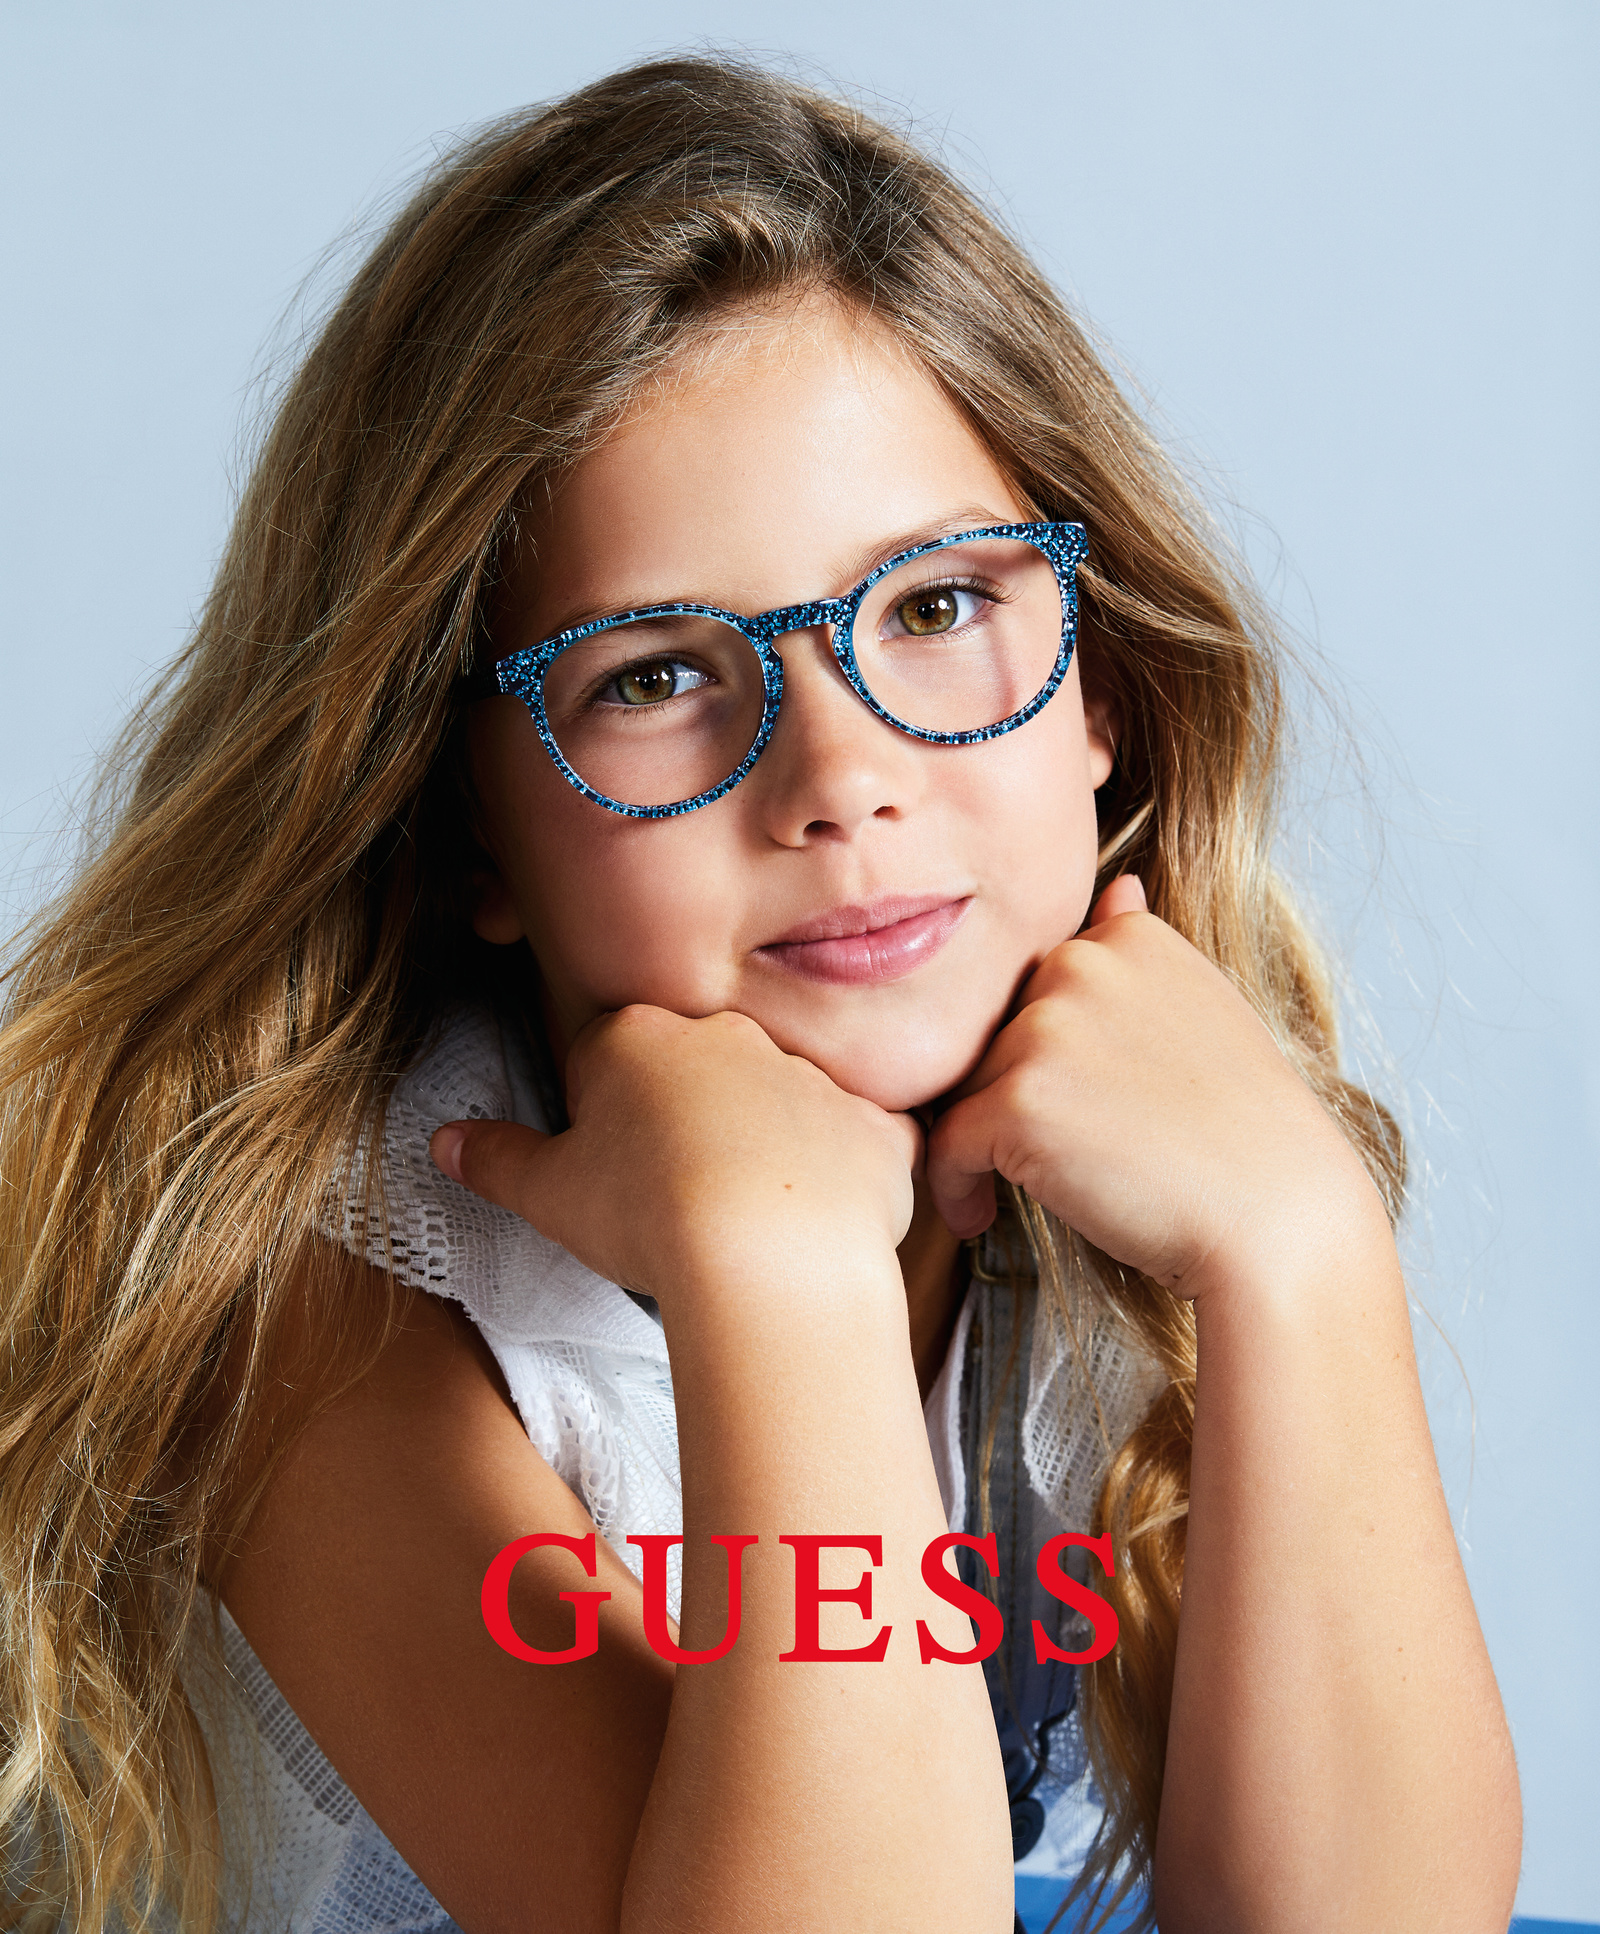 624_GUESS_KIDS_KE02.jpg